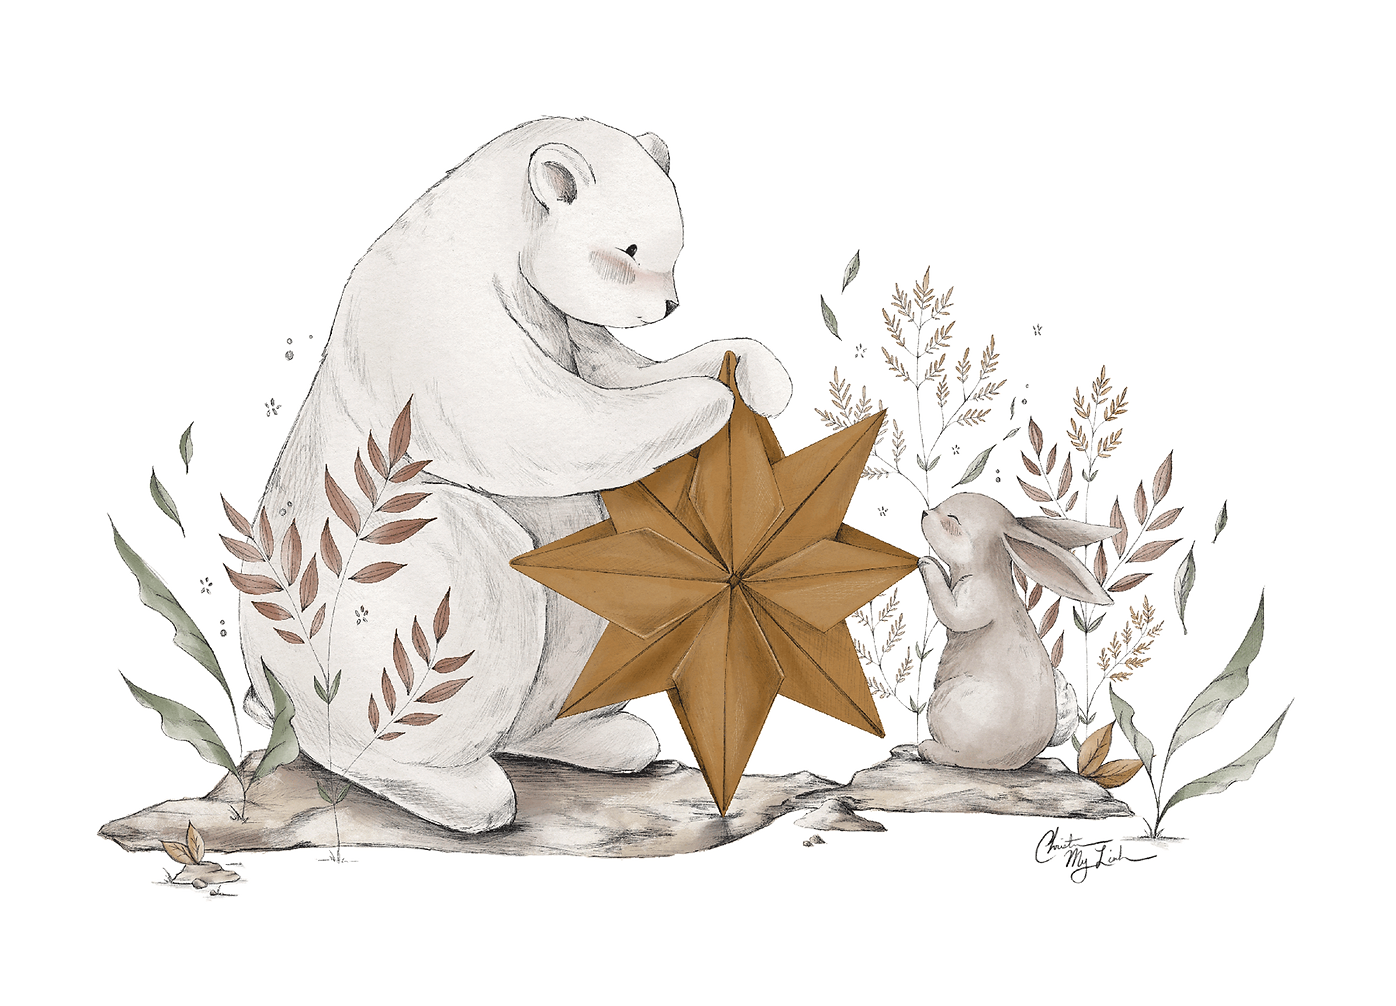 Bunny, Bear, and Origami Star by Christine My Linh